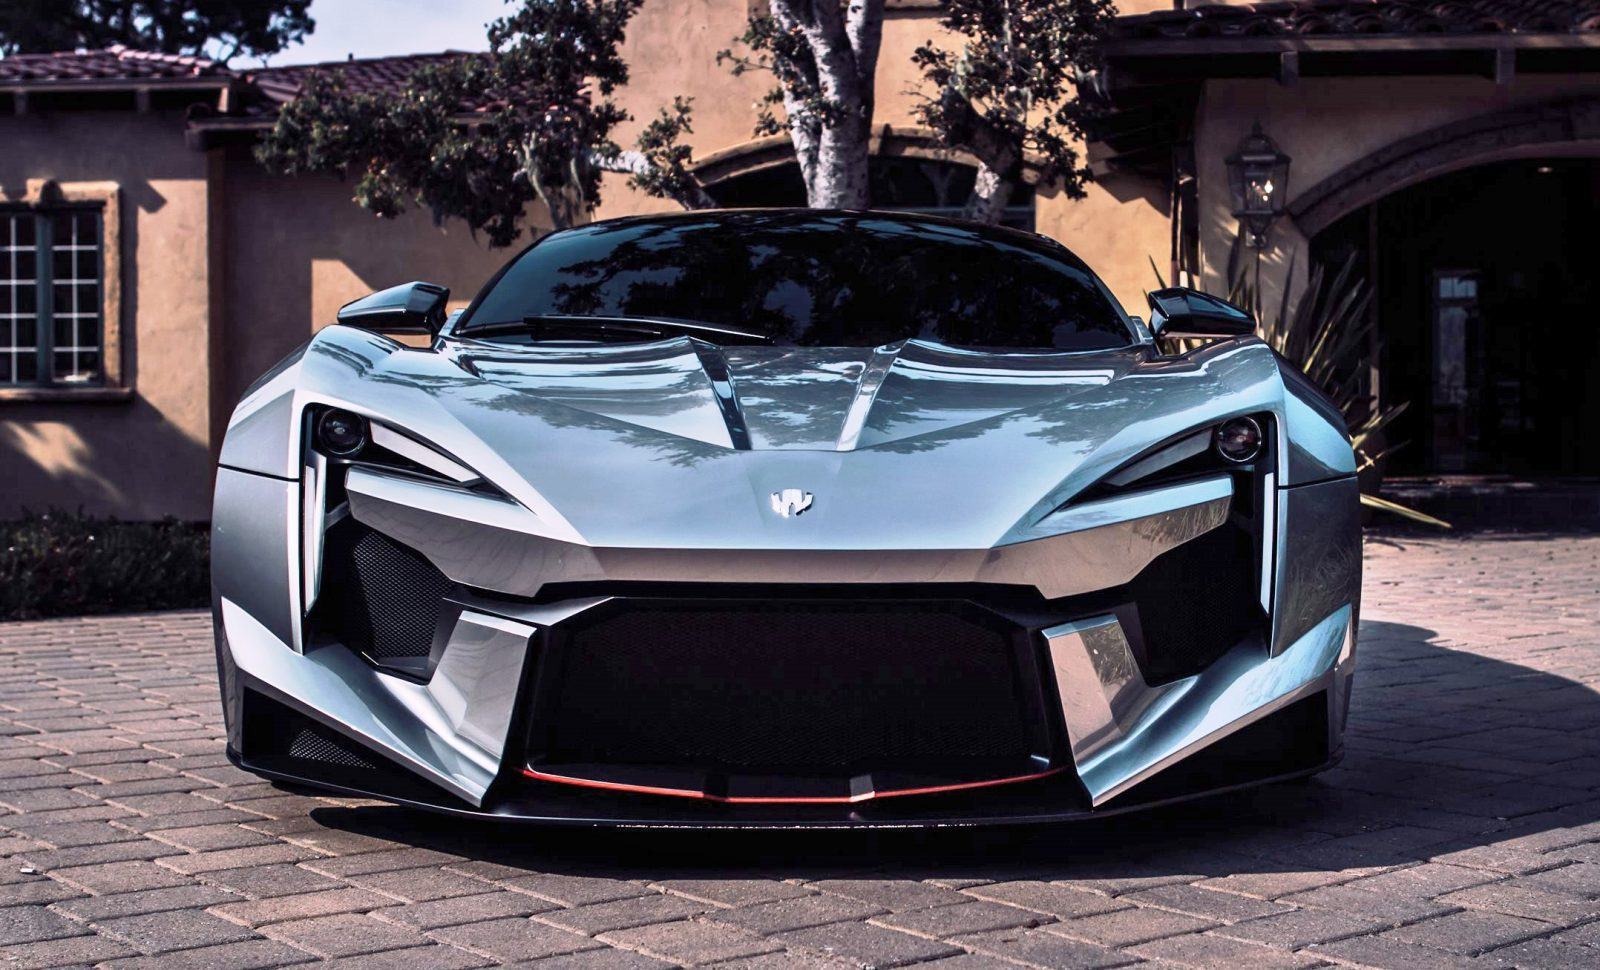 Mid City Subaru >> 2017 W Motors FENYR SuperSport In Near-Production Form for Shanghai » LATEST NEWS » Car-Revs ...